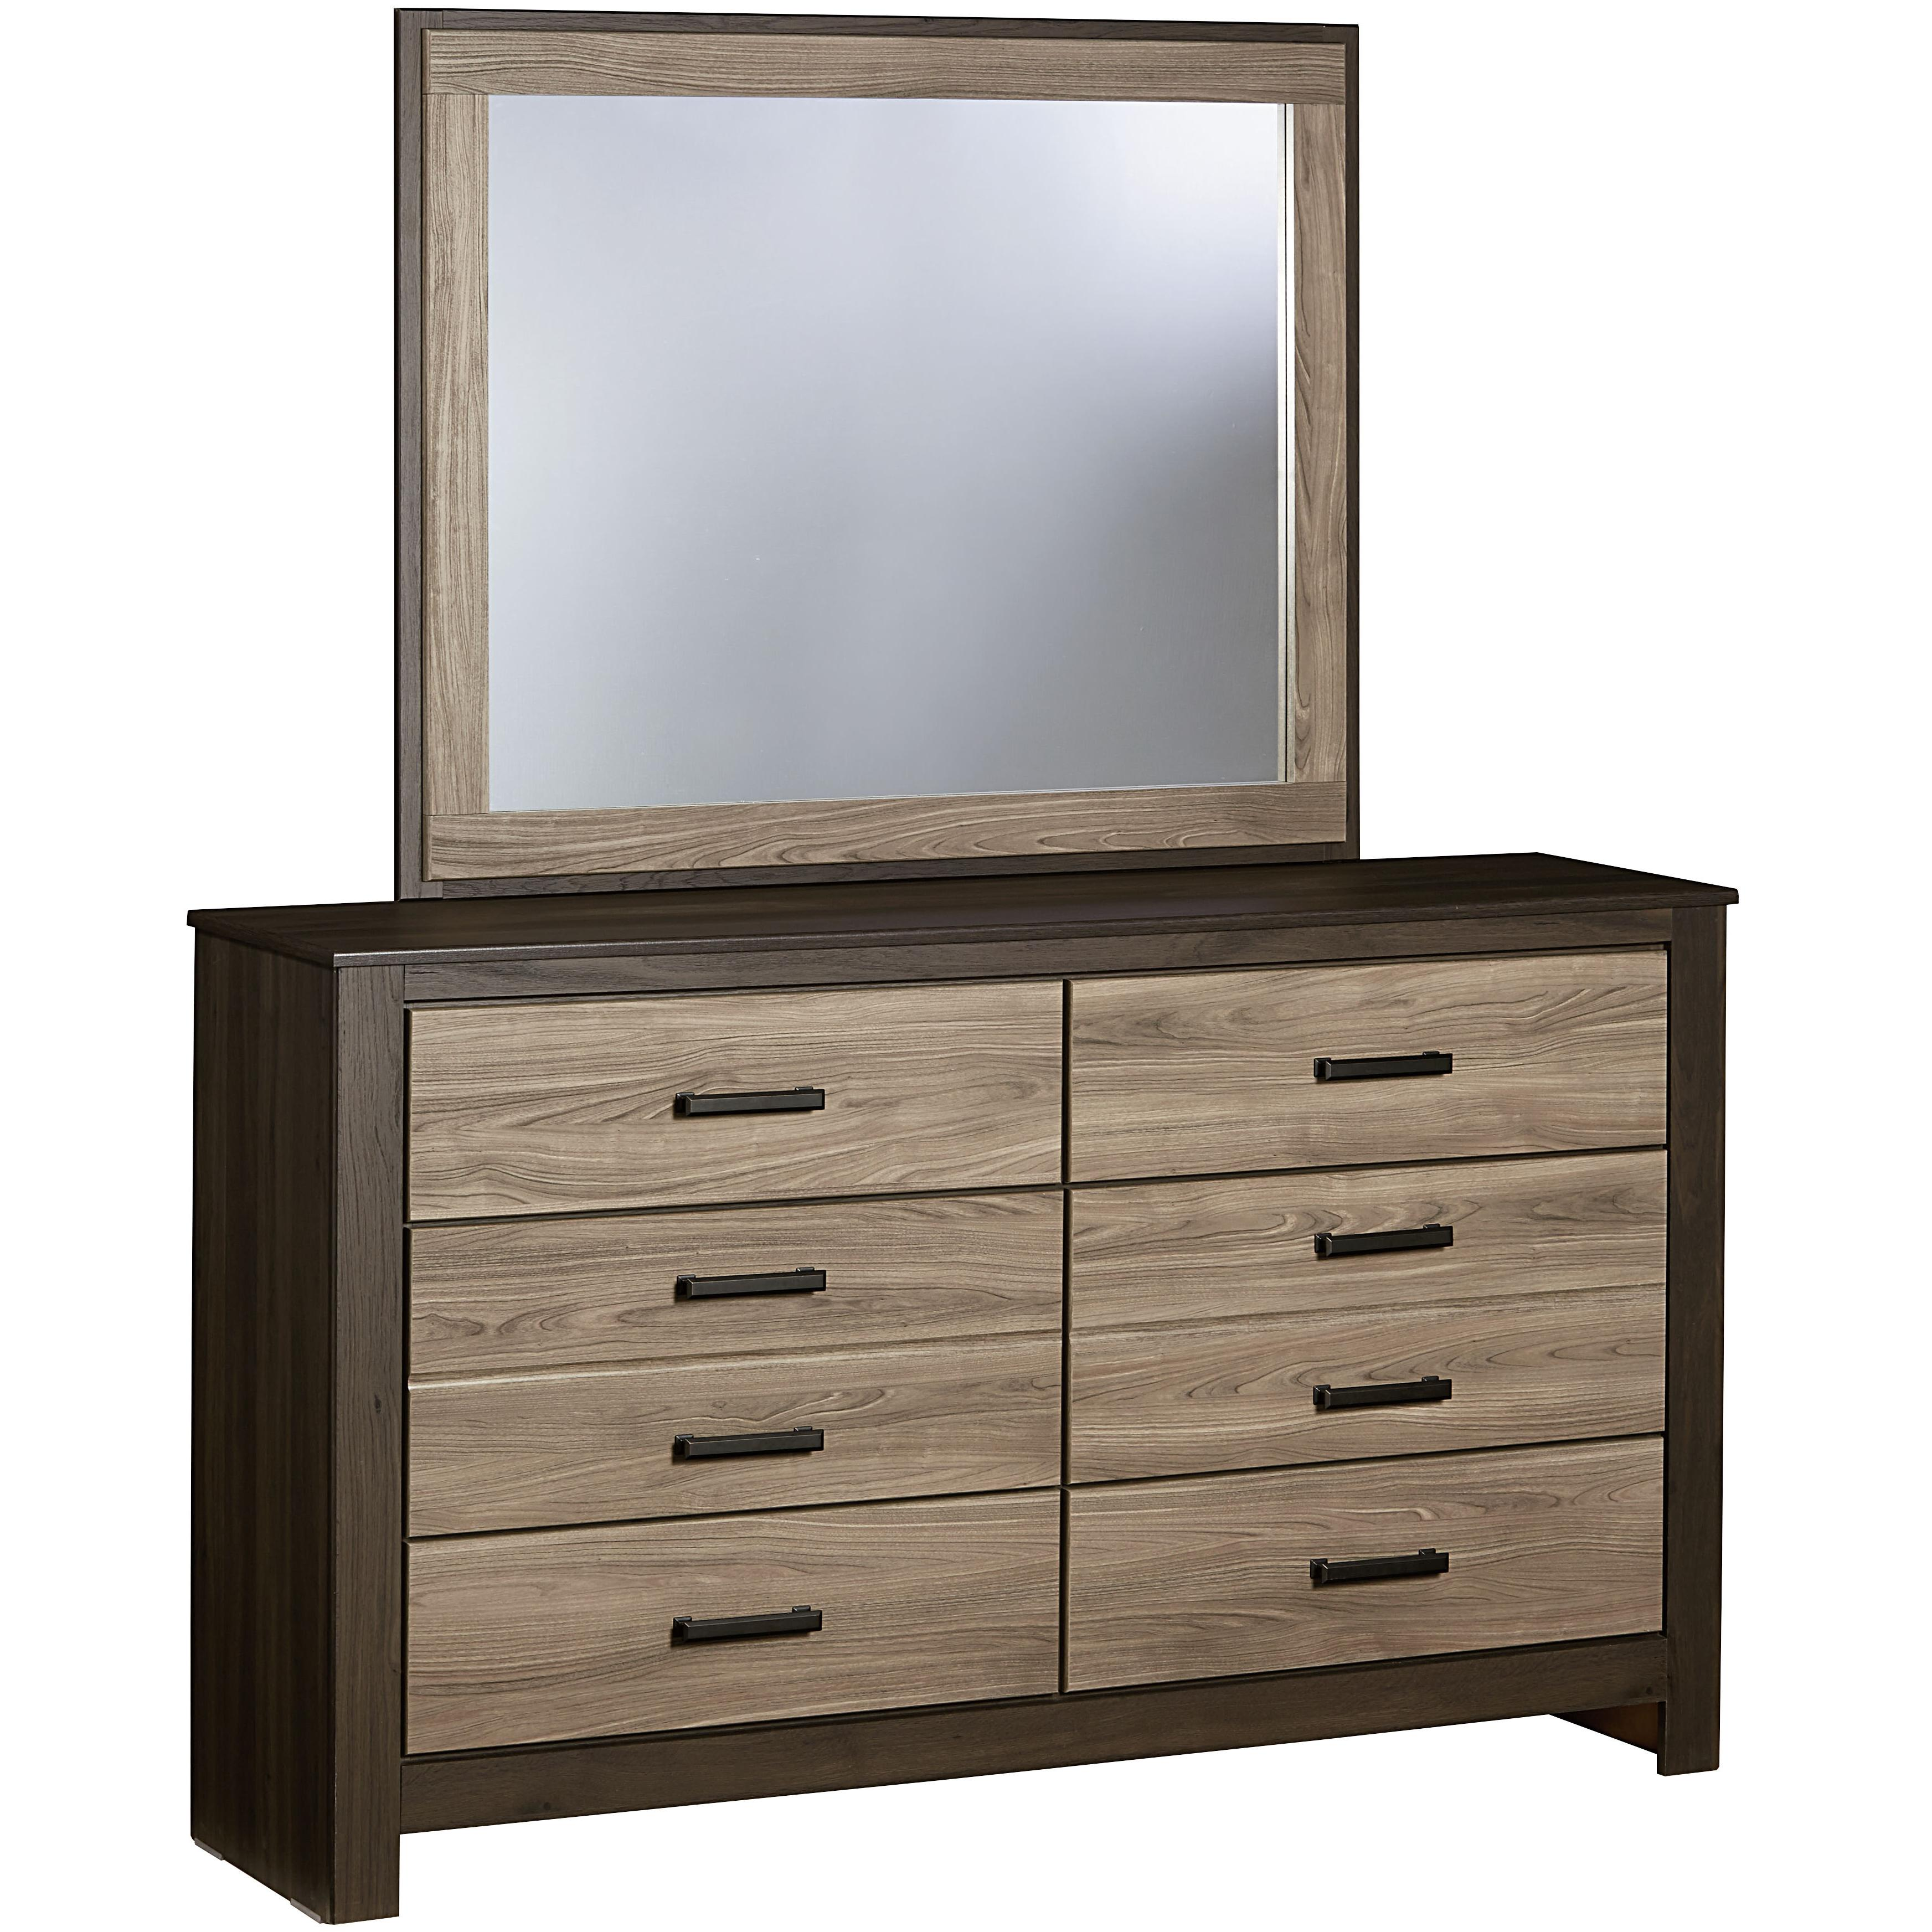 Standard Furniture Freemont Dresser with Mirror - Item Number: 69759+69768